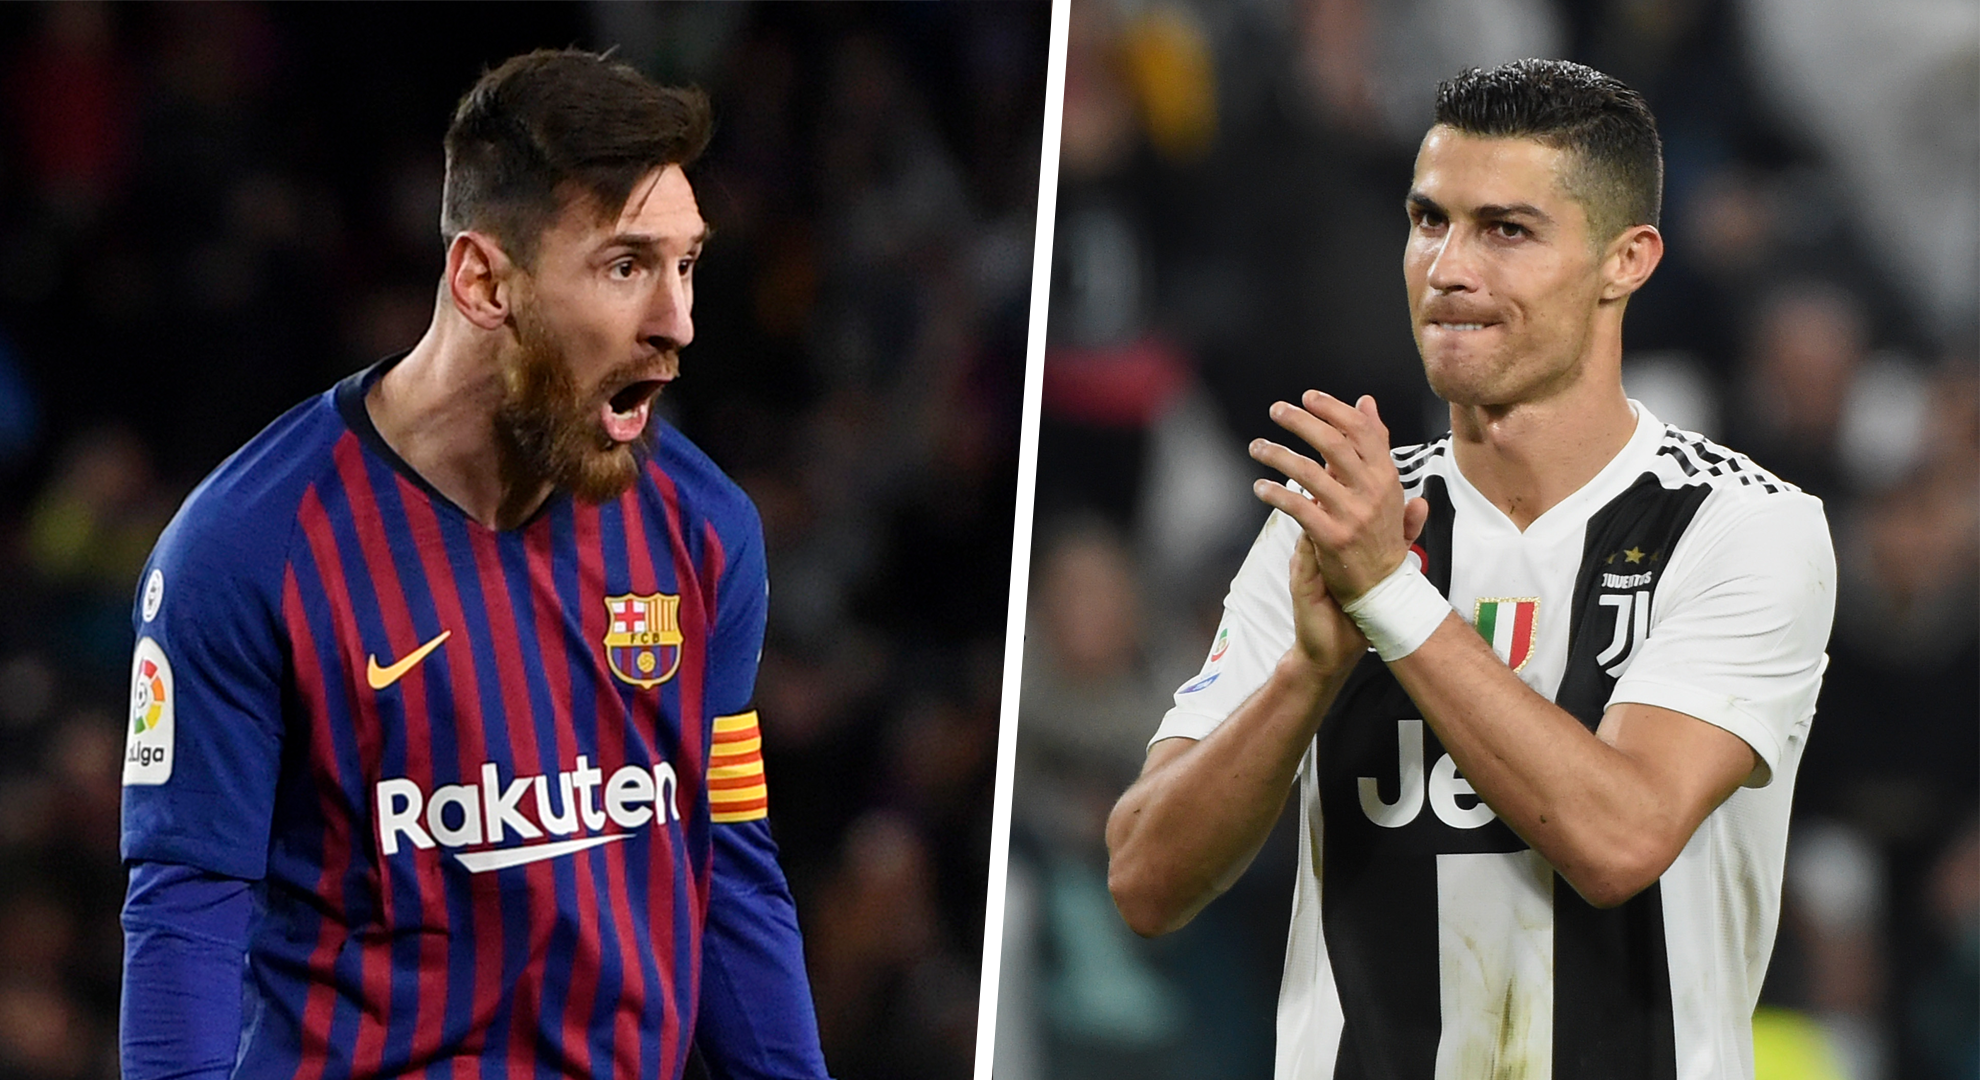 Messi vs Ronaldo: Who had the best league season in 2018-19? | Goal.com